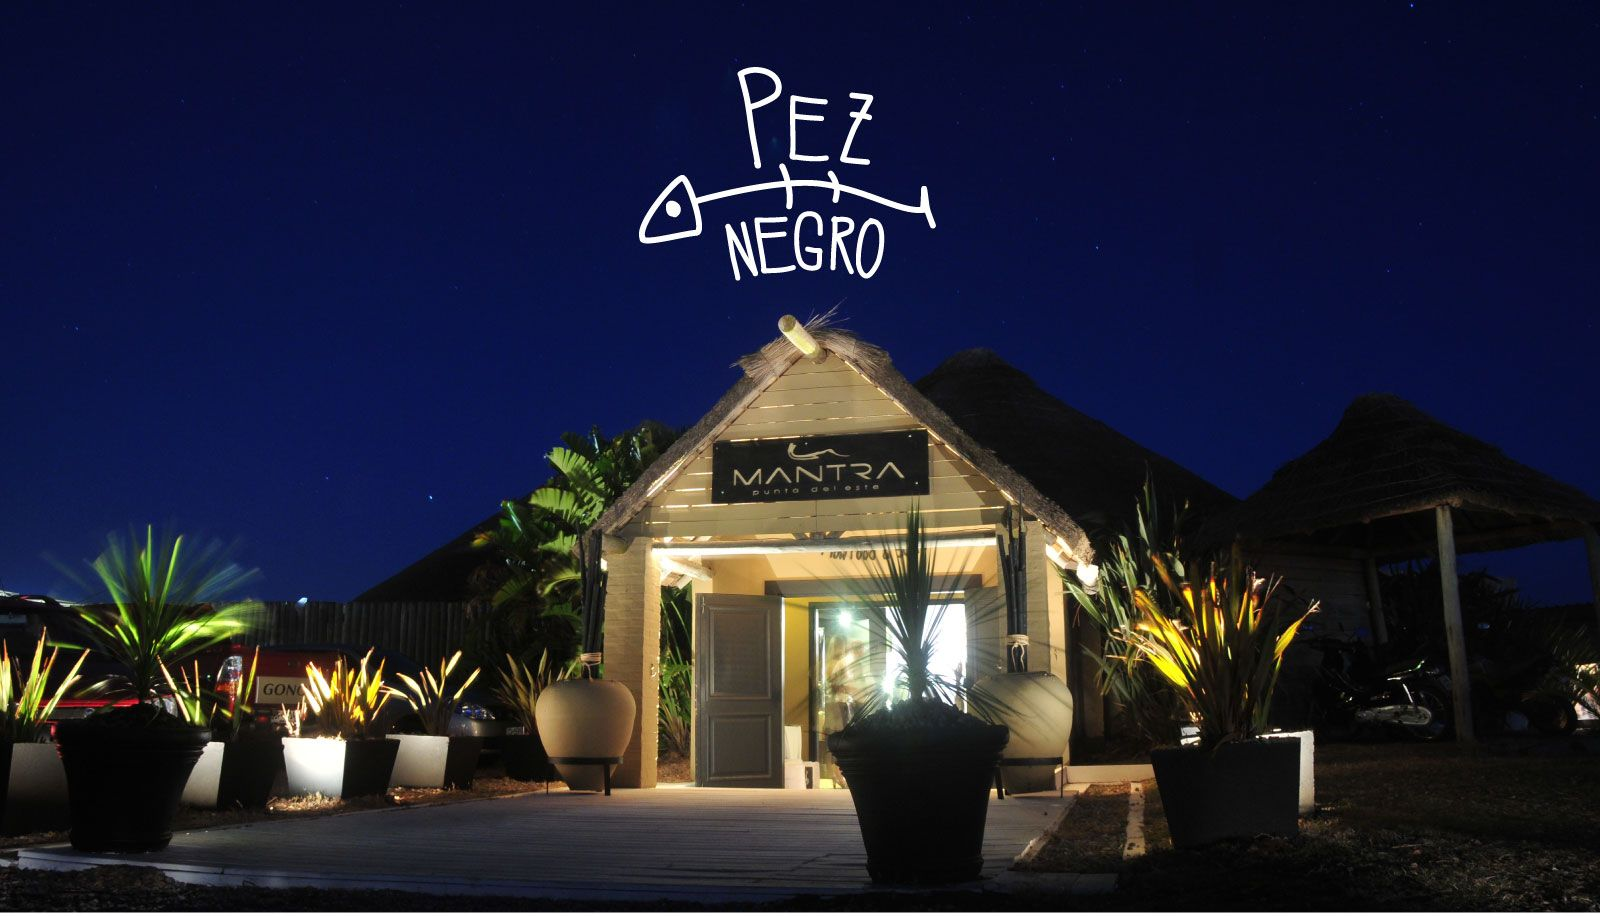 Pez Negro At Mantra Beach Punta Del Este Mantra Beach Club  # Eduardo Pez Muebles